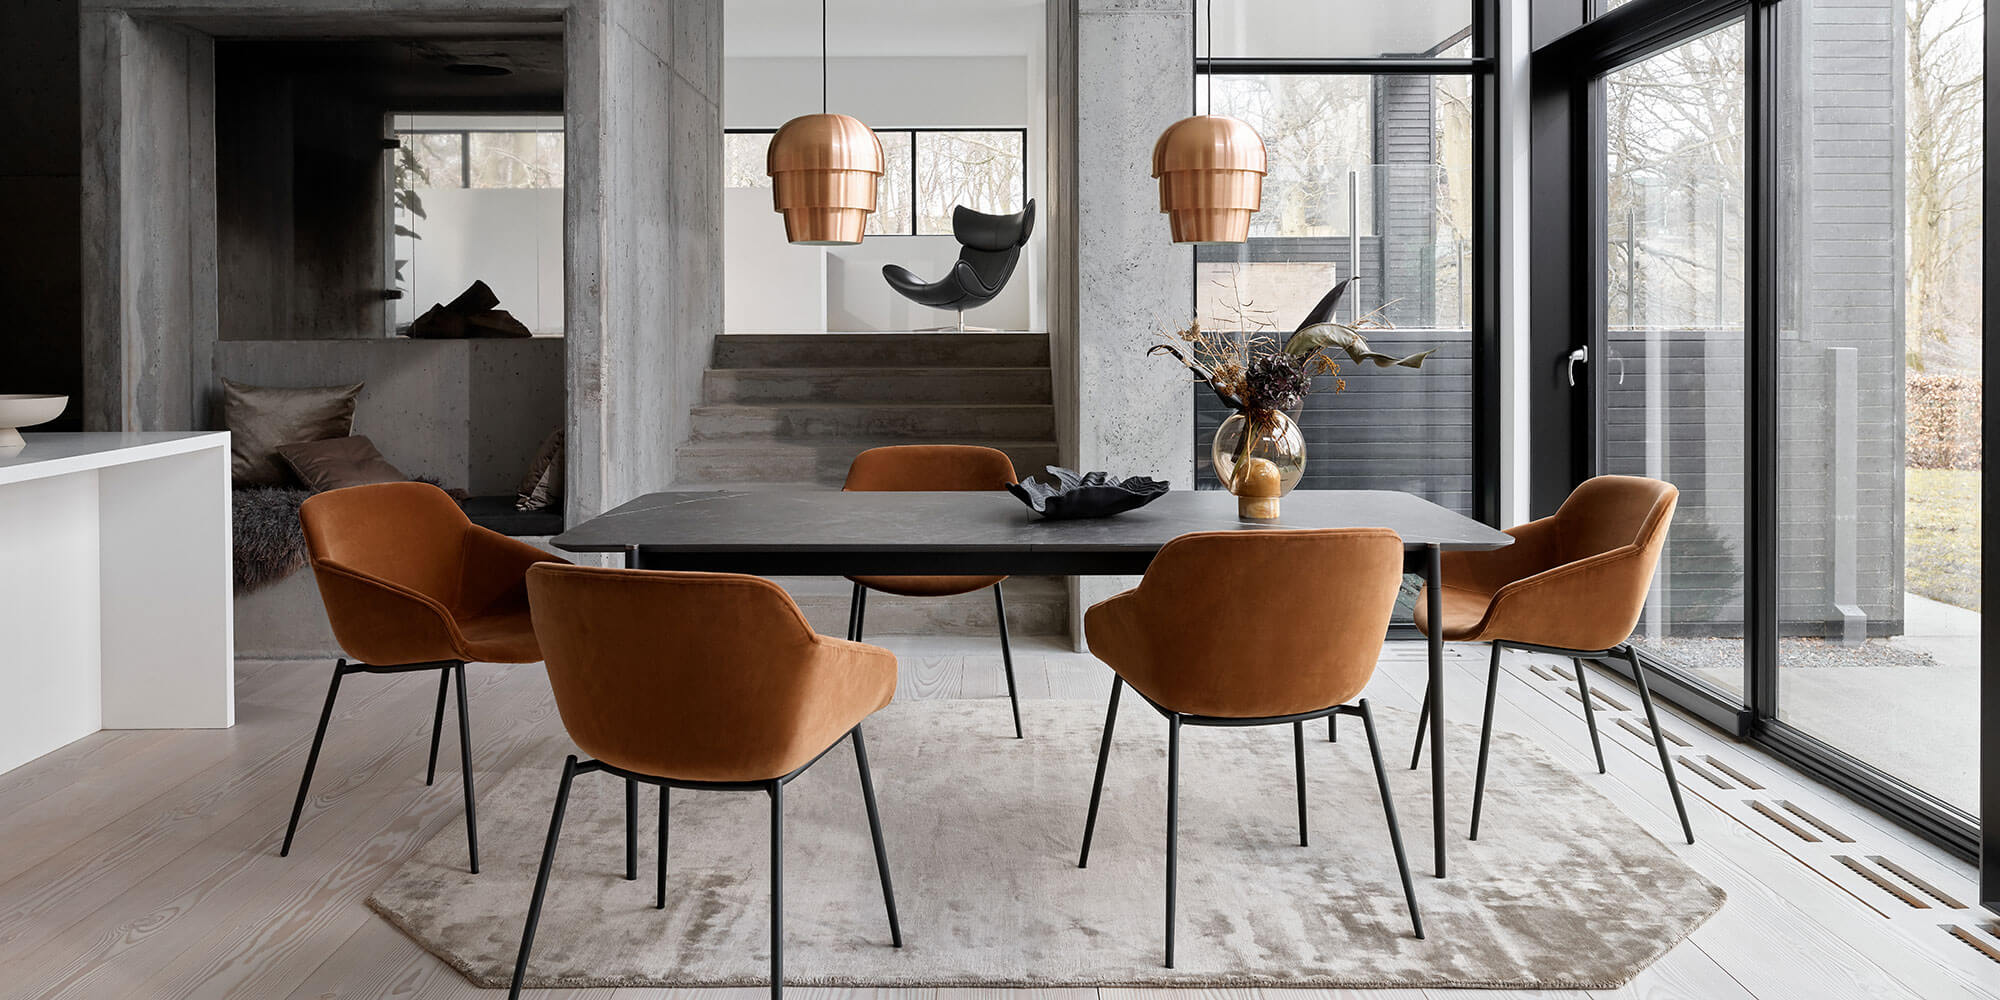 contemporary danish furniture | discover boconcept - boconcept